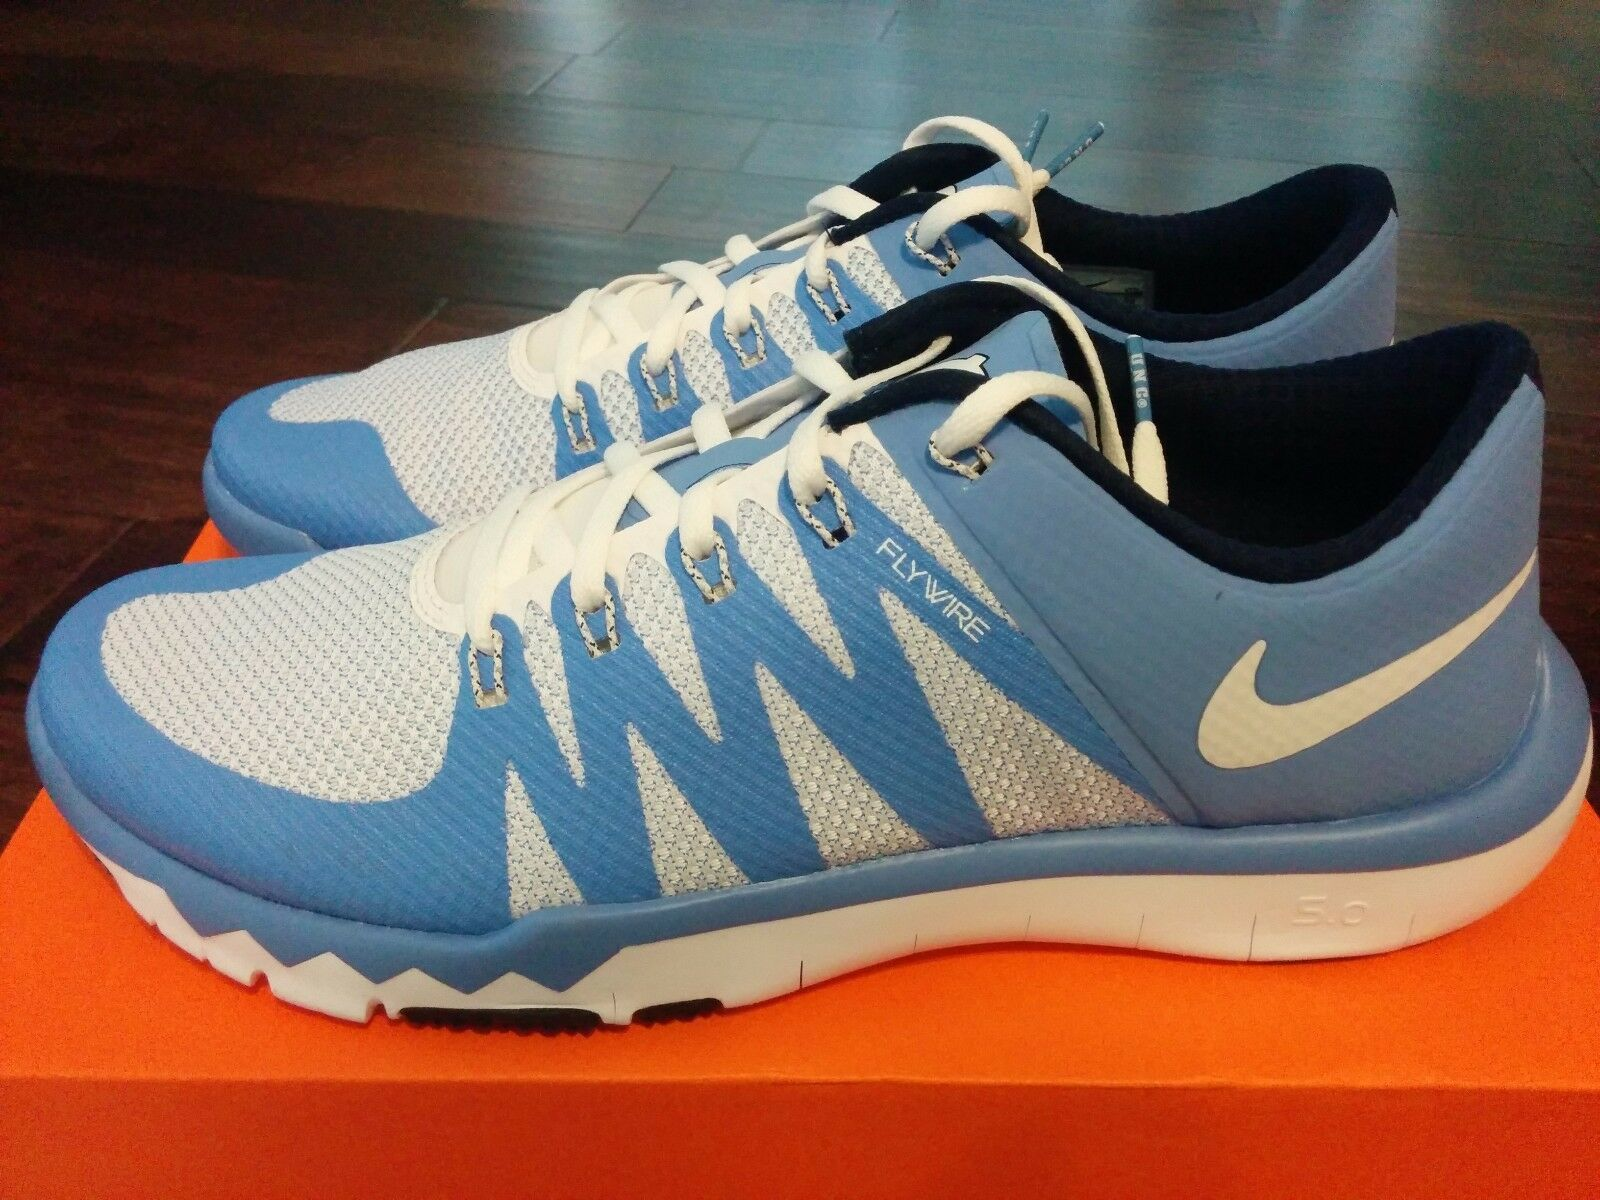 nike free 5.0 v6 north carolina college blue tarheels unc - college carolina - football selten 7,5 8677ca